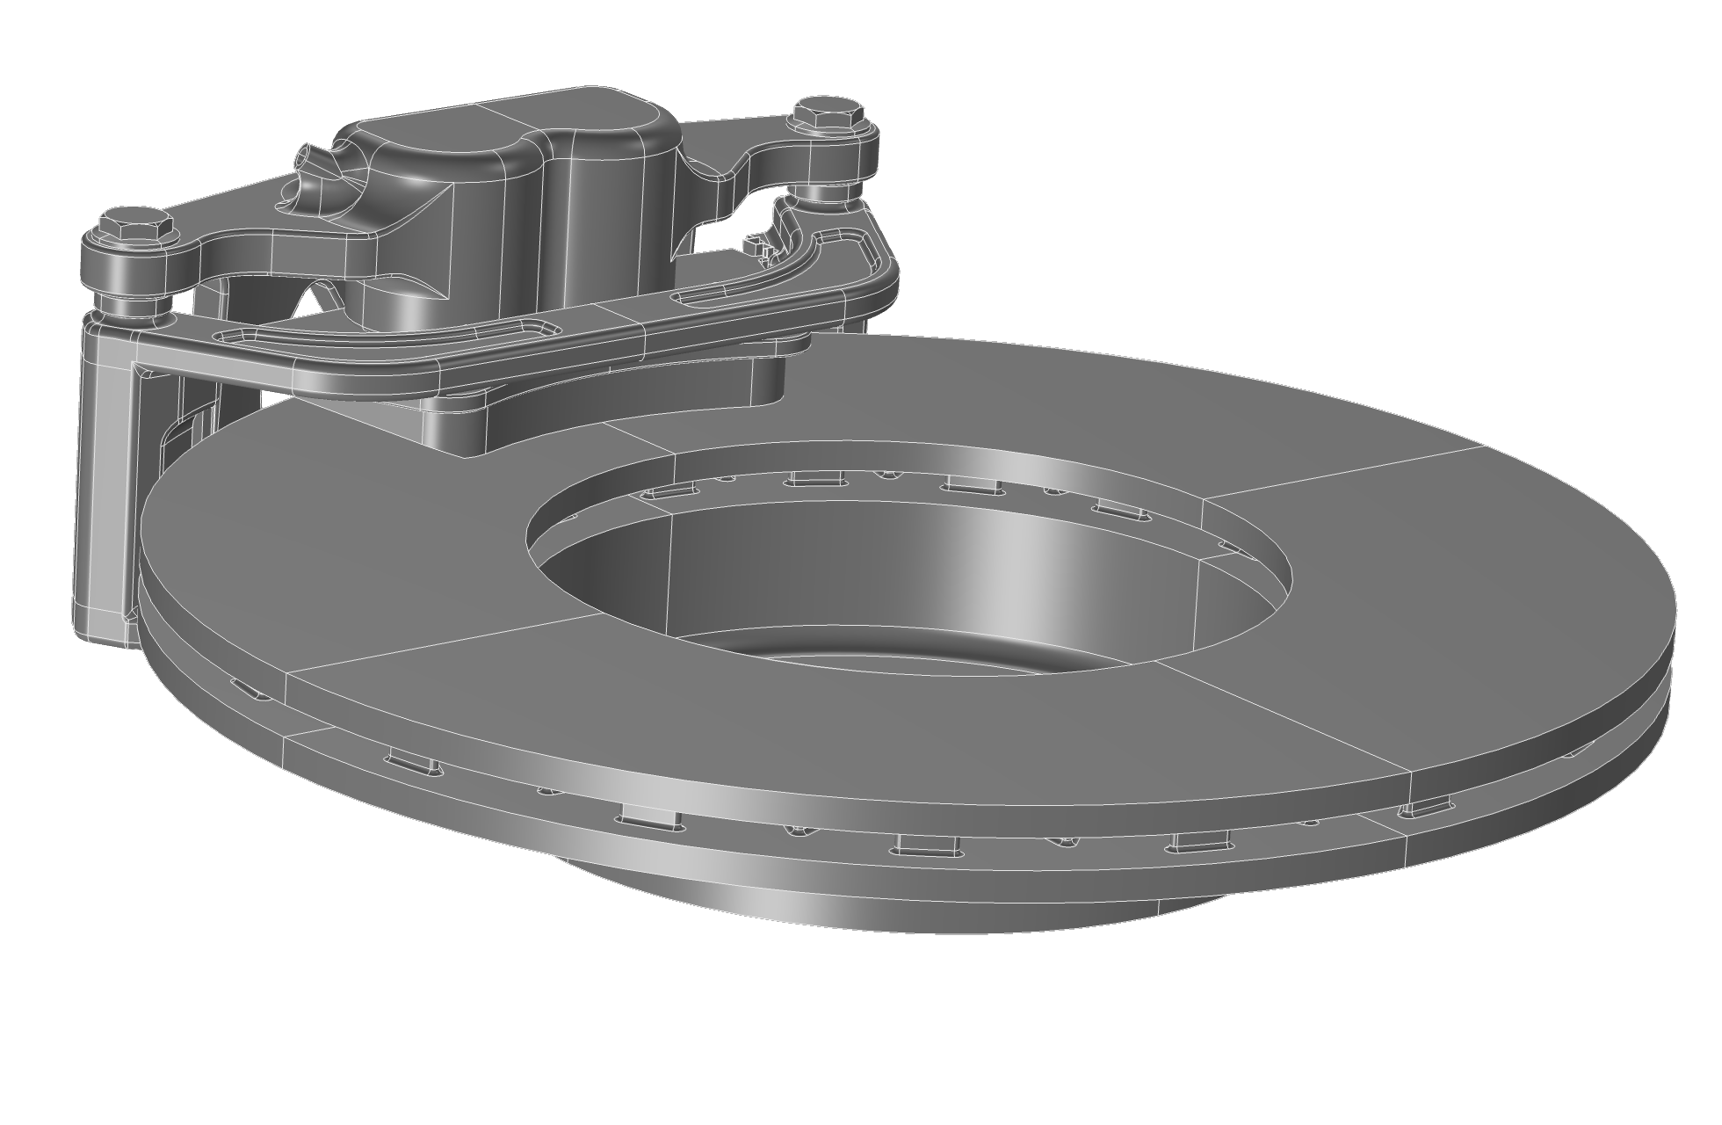 A gray geometry of a car disc brake assembly made up of a ventilated disc and caliper assembly.